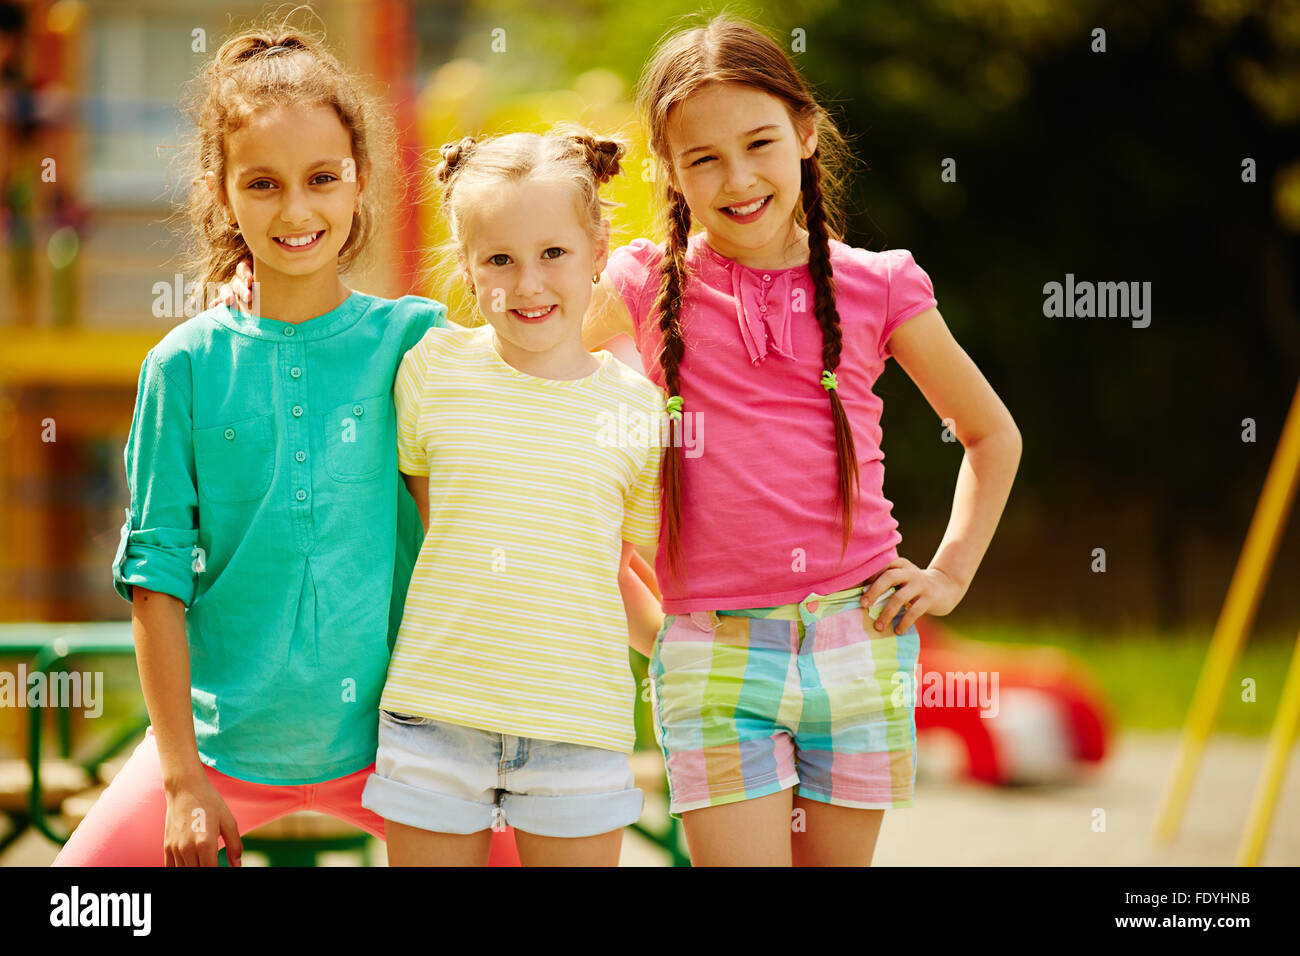 Adorable girls looking at camera with smiles outdoors - Stock Image